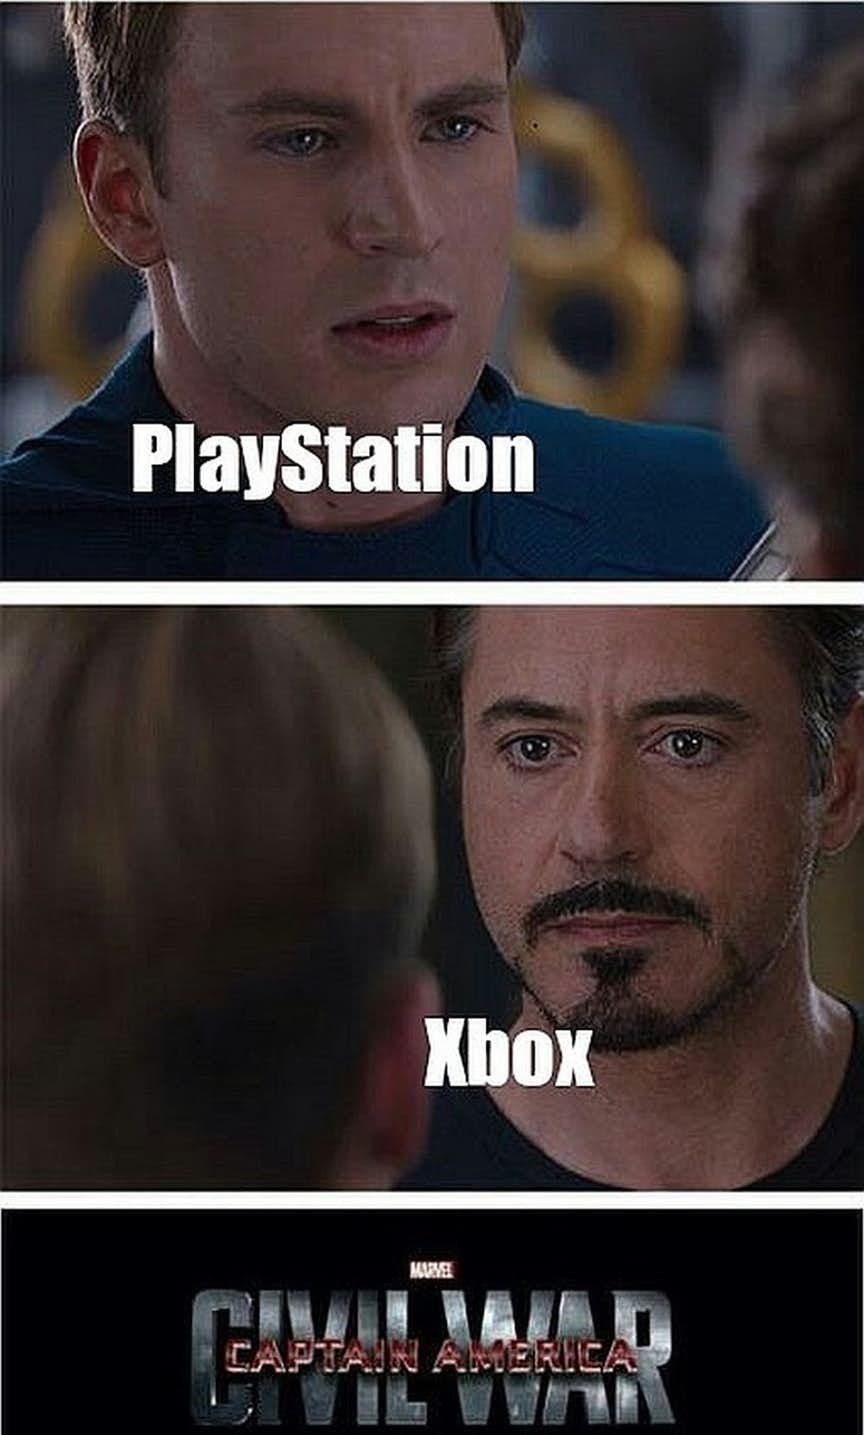 40 Best Xbox Memes To Hold You Over In 2021 Memes Funny Video Game Memes Gaming Memes